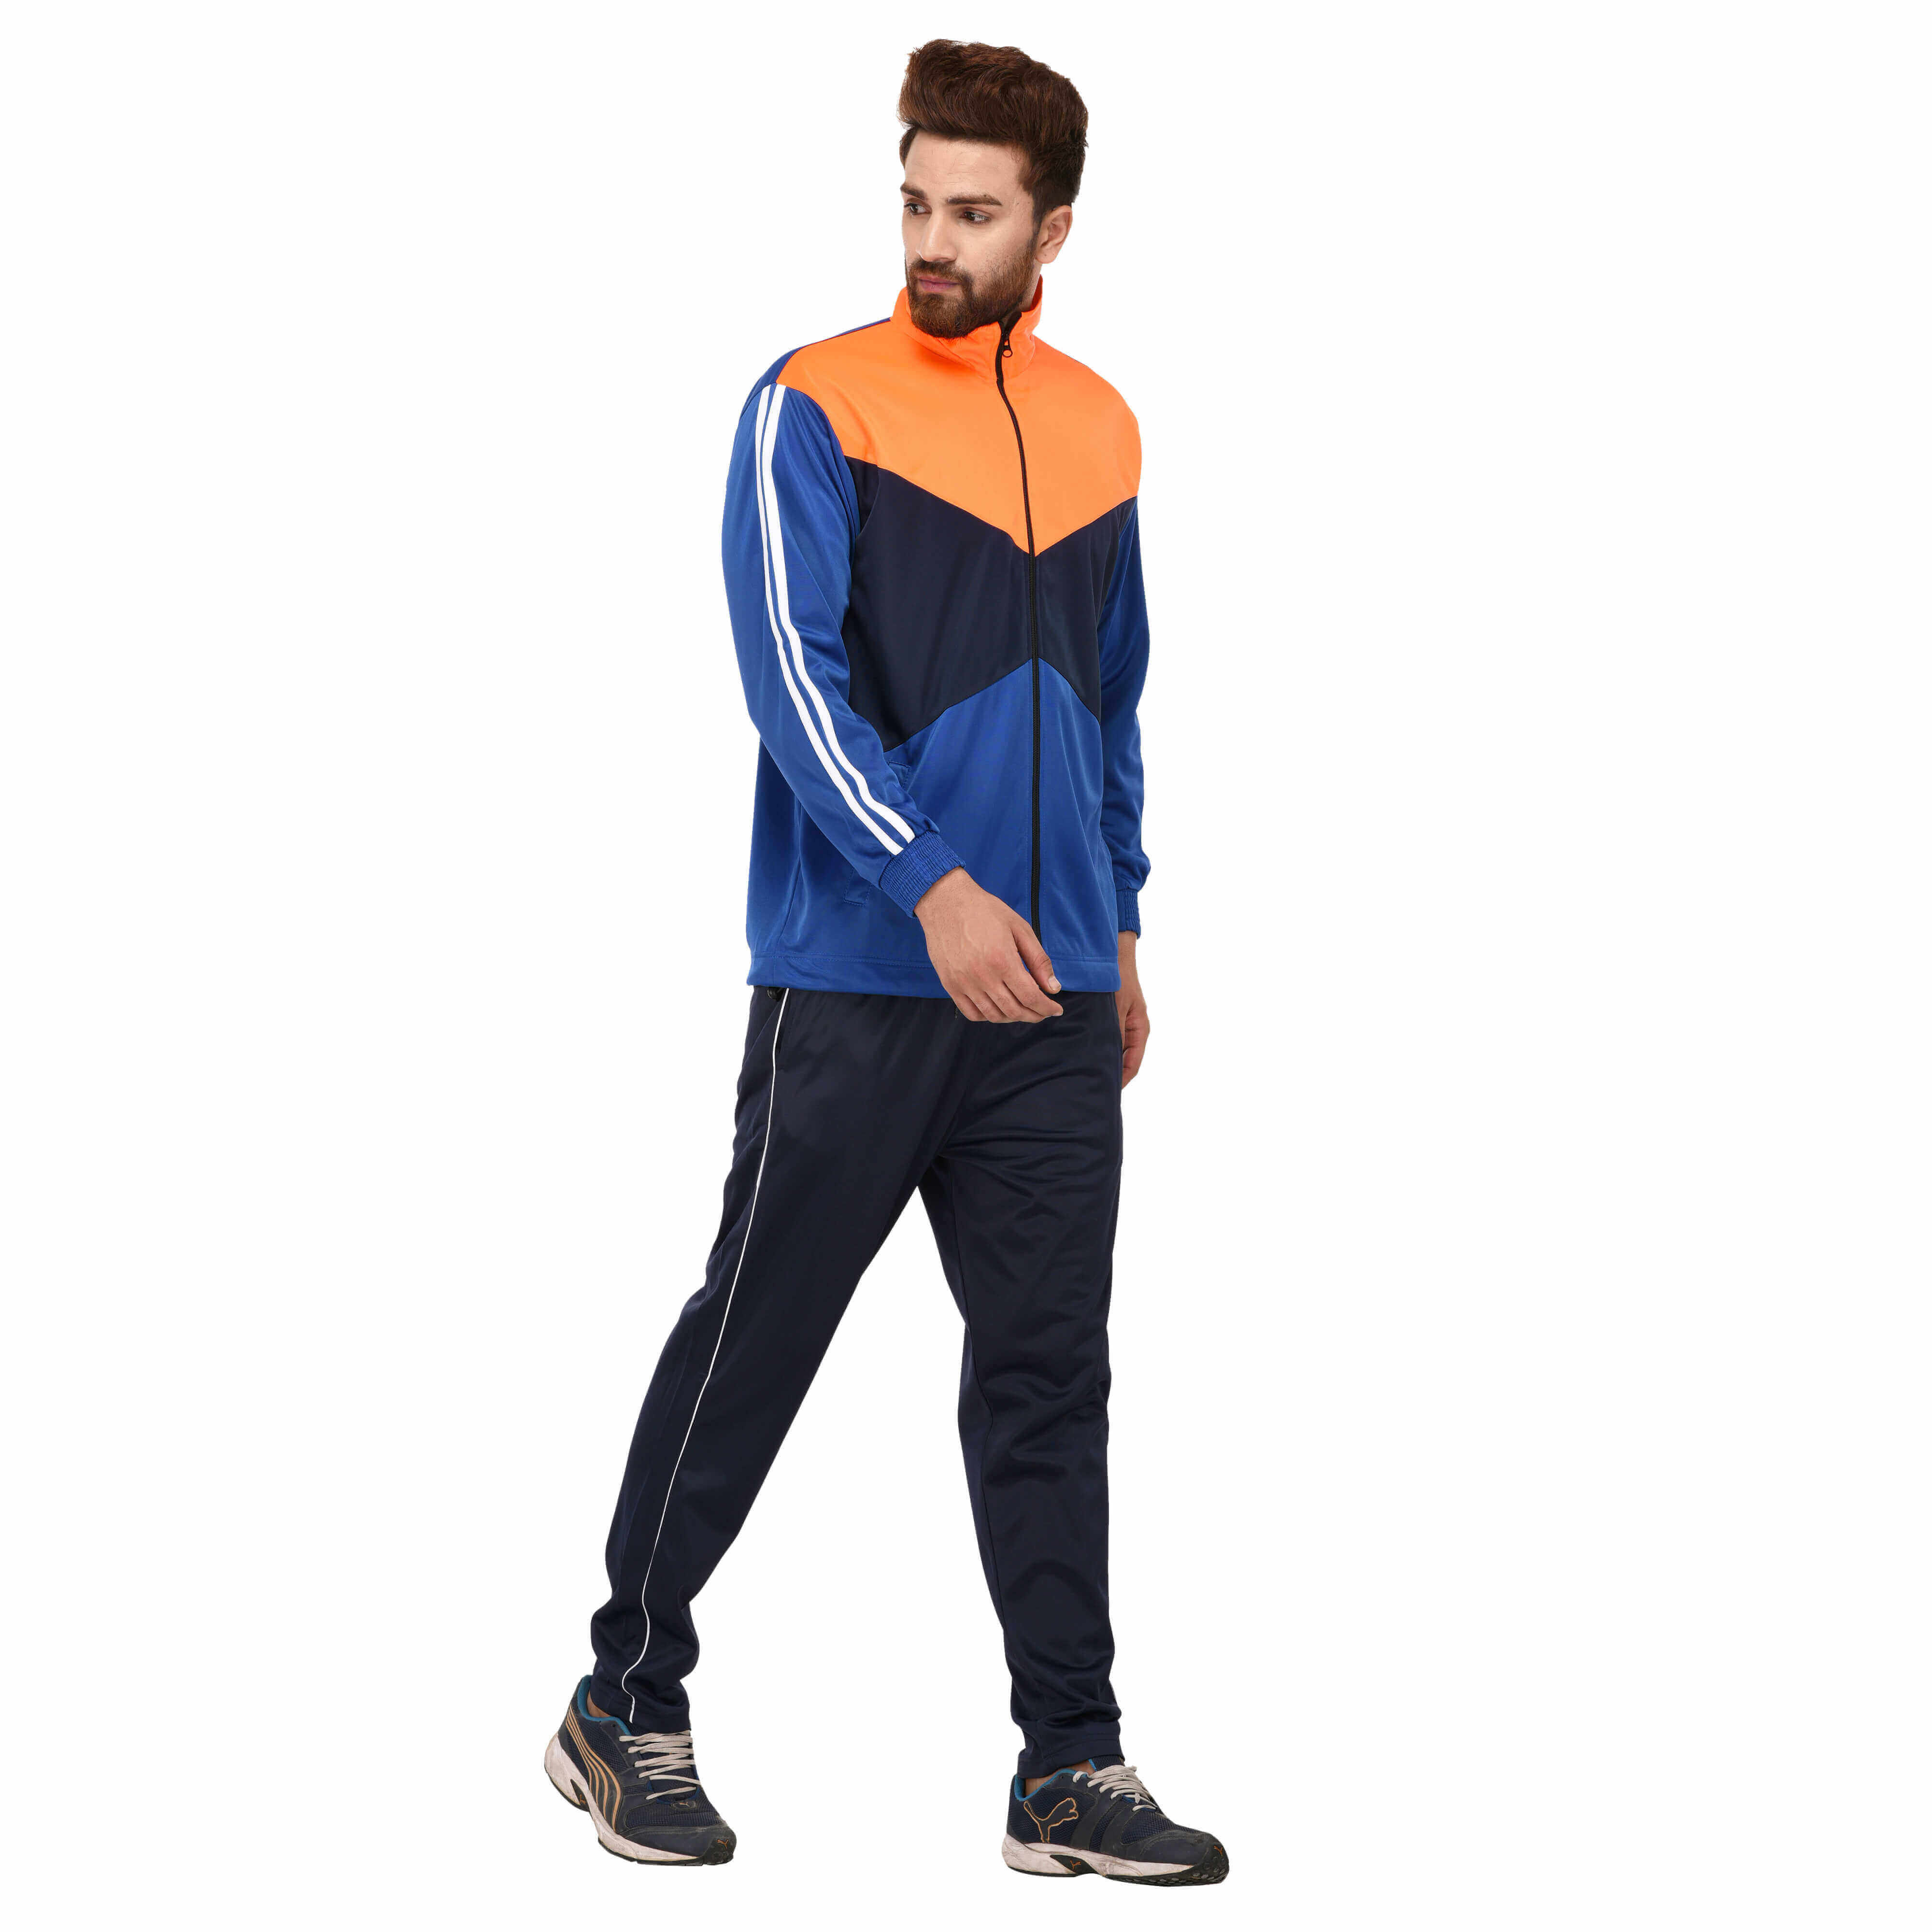 Mens Designer Tracksuits Manufacturers in United-states-of-america